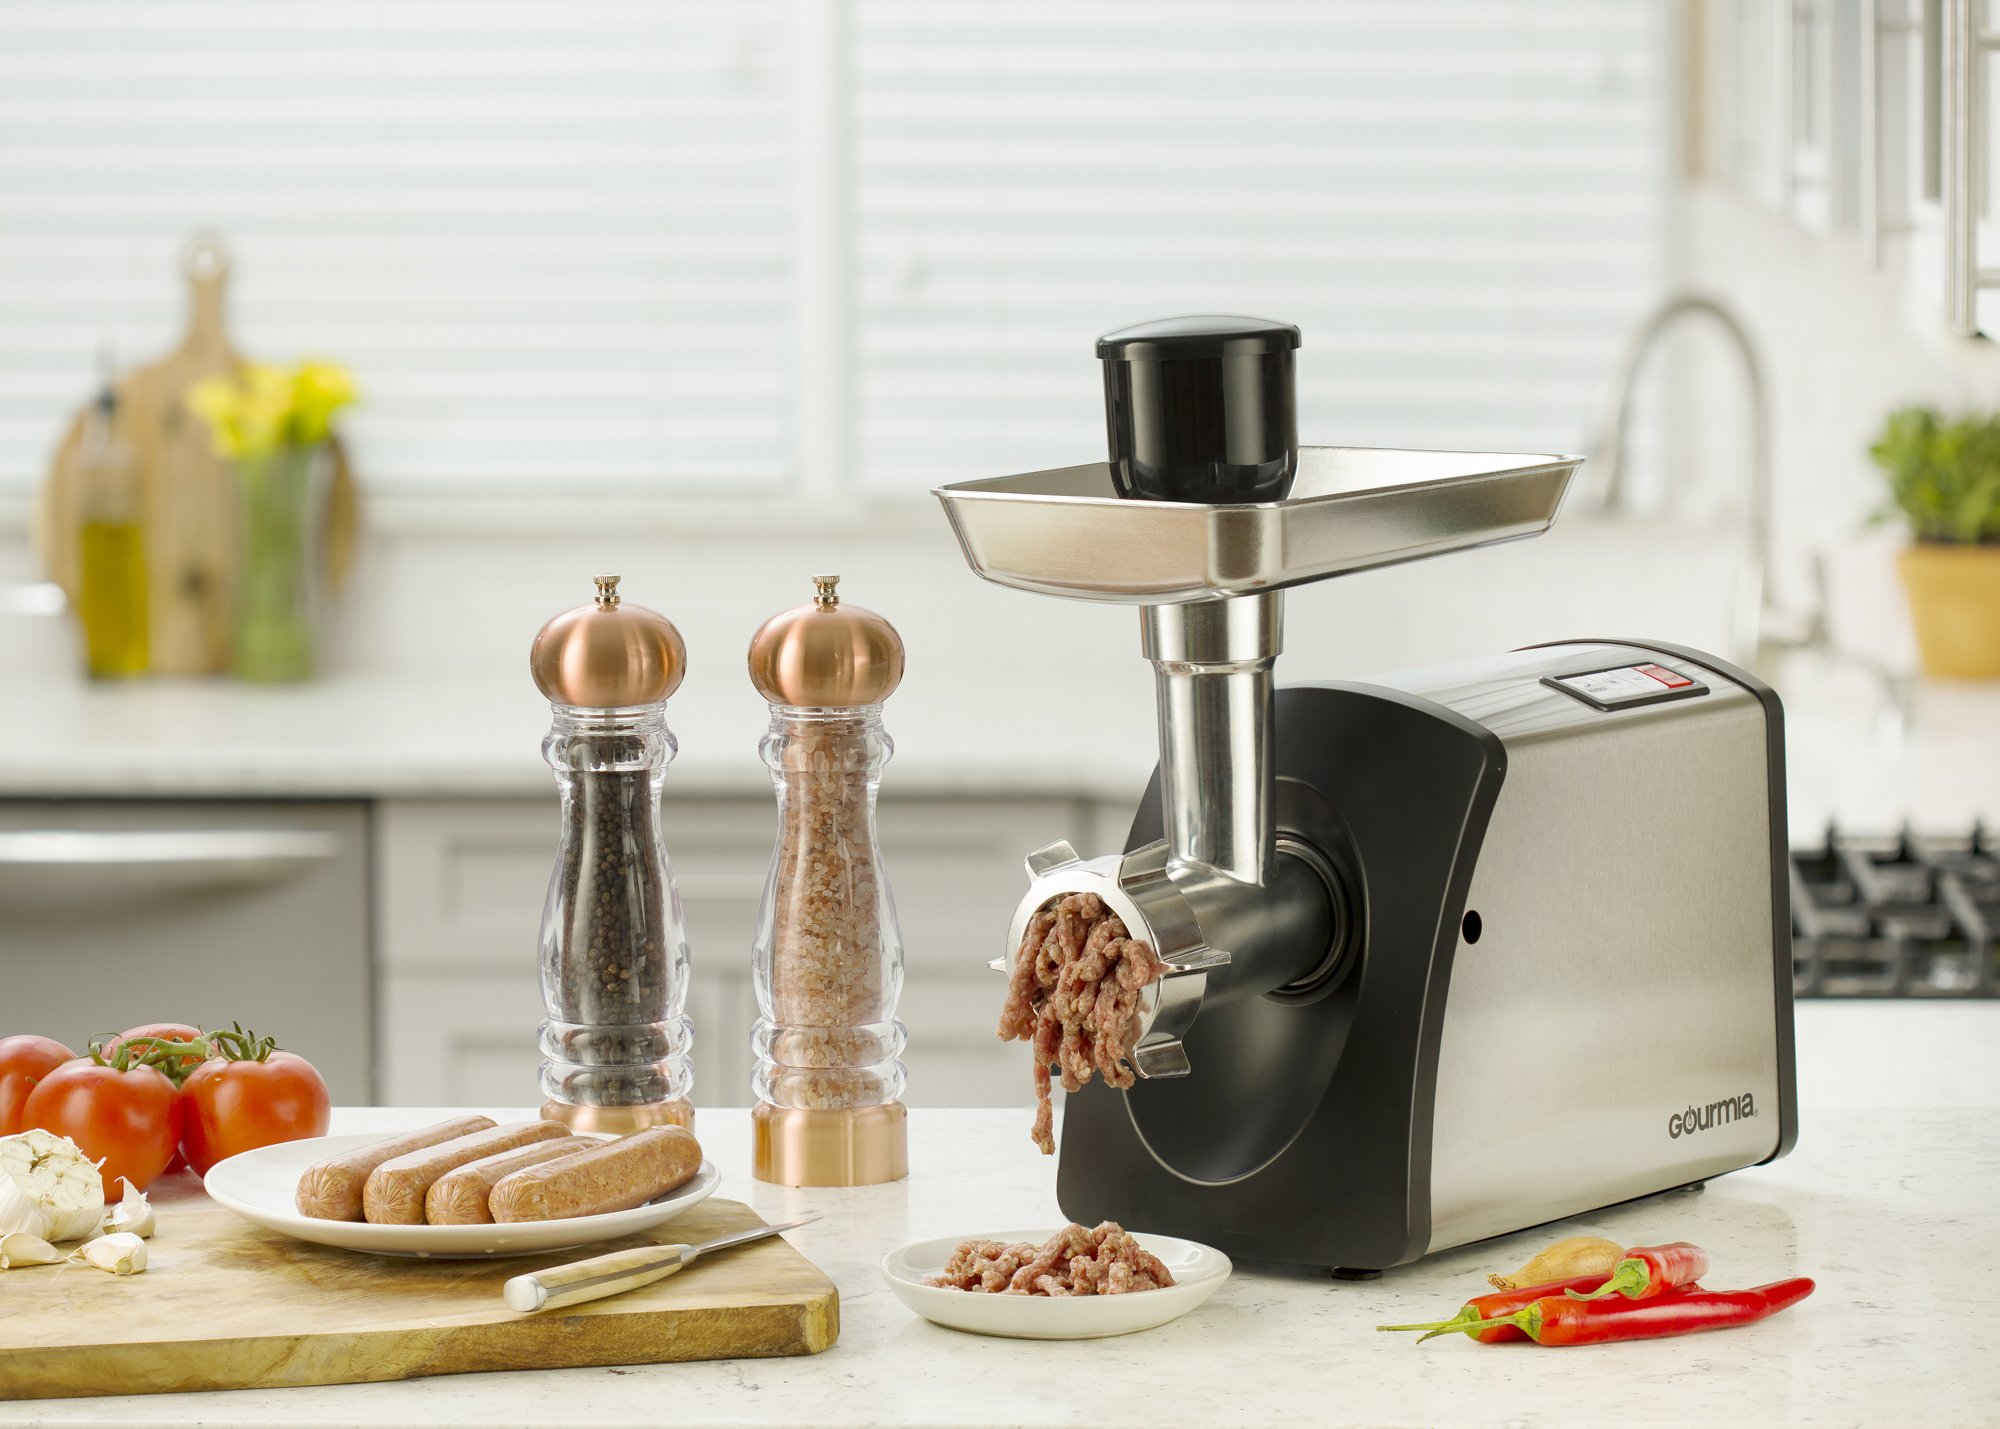 Gourmia GMG7500 Prime Plus Stainless Steel Electric Meat Grinder Different Grinding Plates, Sausage Funnels And Kibbeh Attachment Recipe Book Included 800 Watts ETL Approved 2200 Watts Max. - 110V by Gourmia (Image #2)